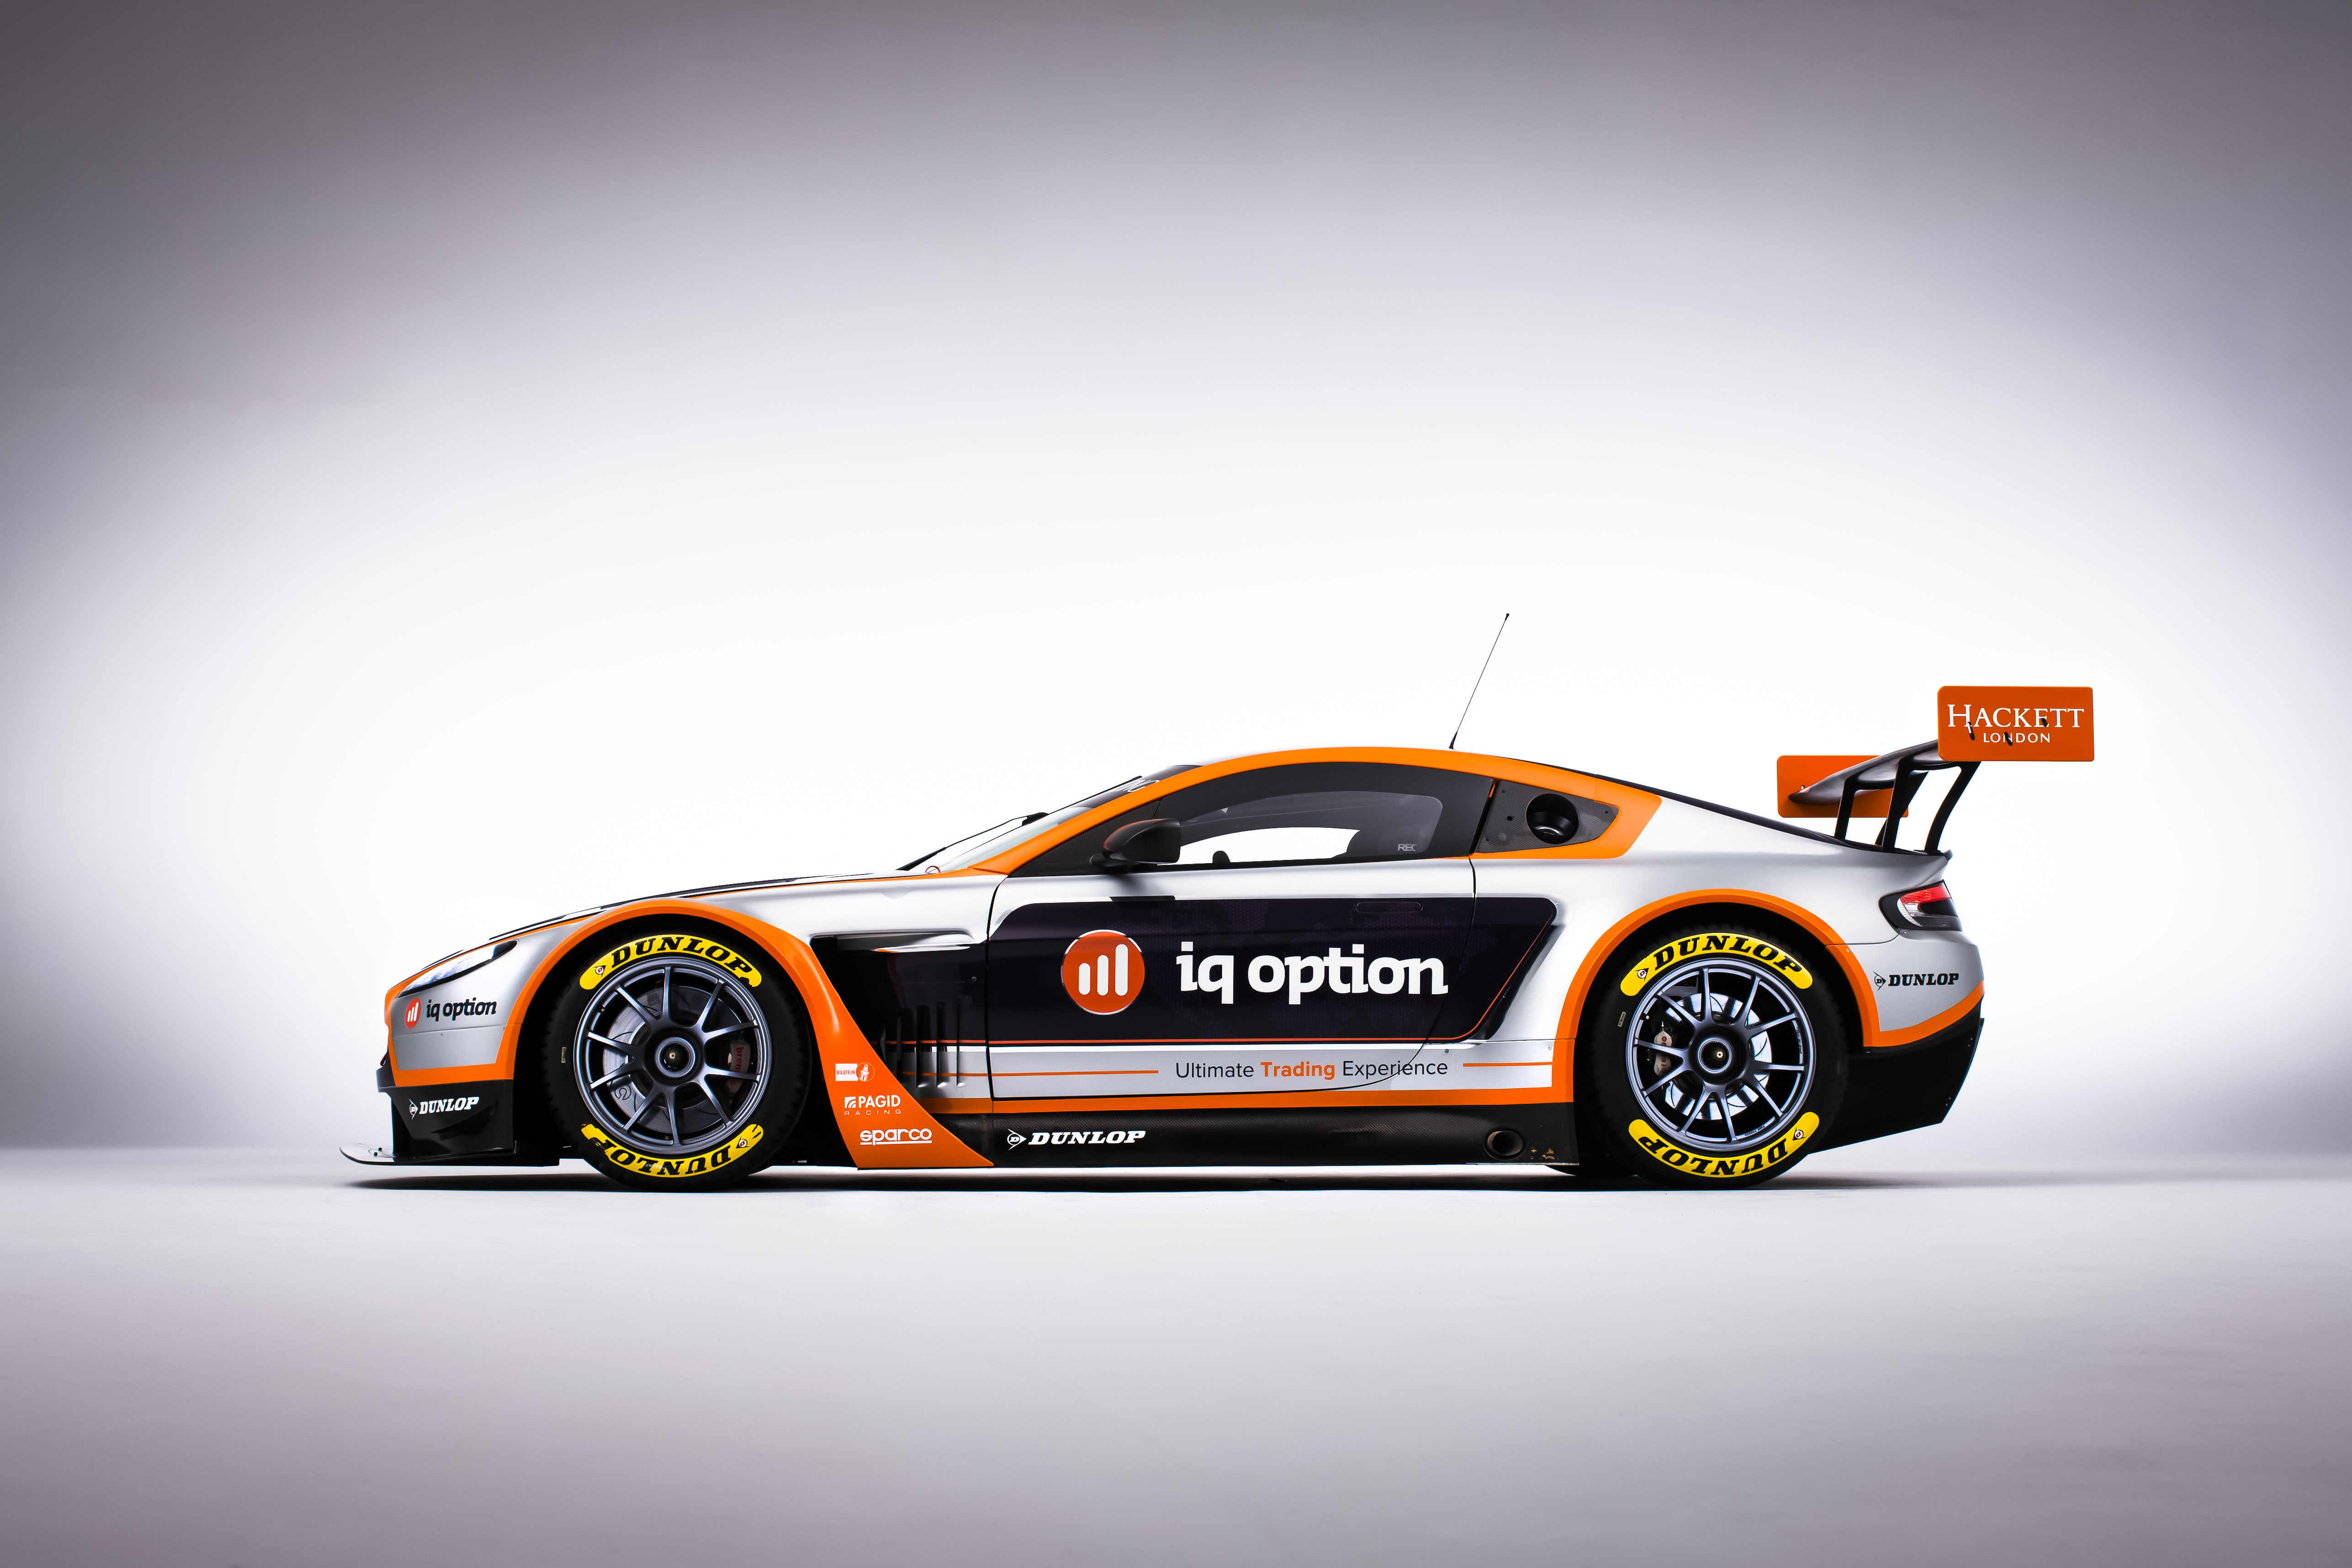 IQ Option Goes for Speedy and Reliable with Aston Martin – Race Car Sponsorship Contract